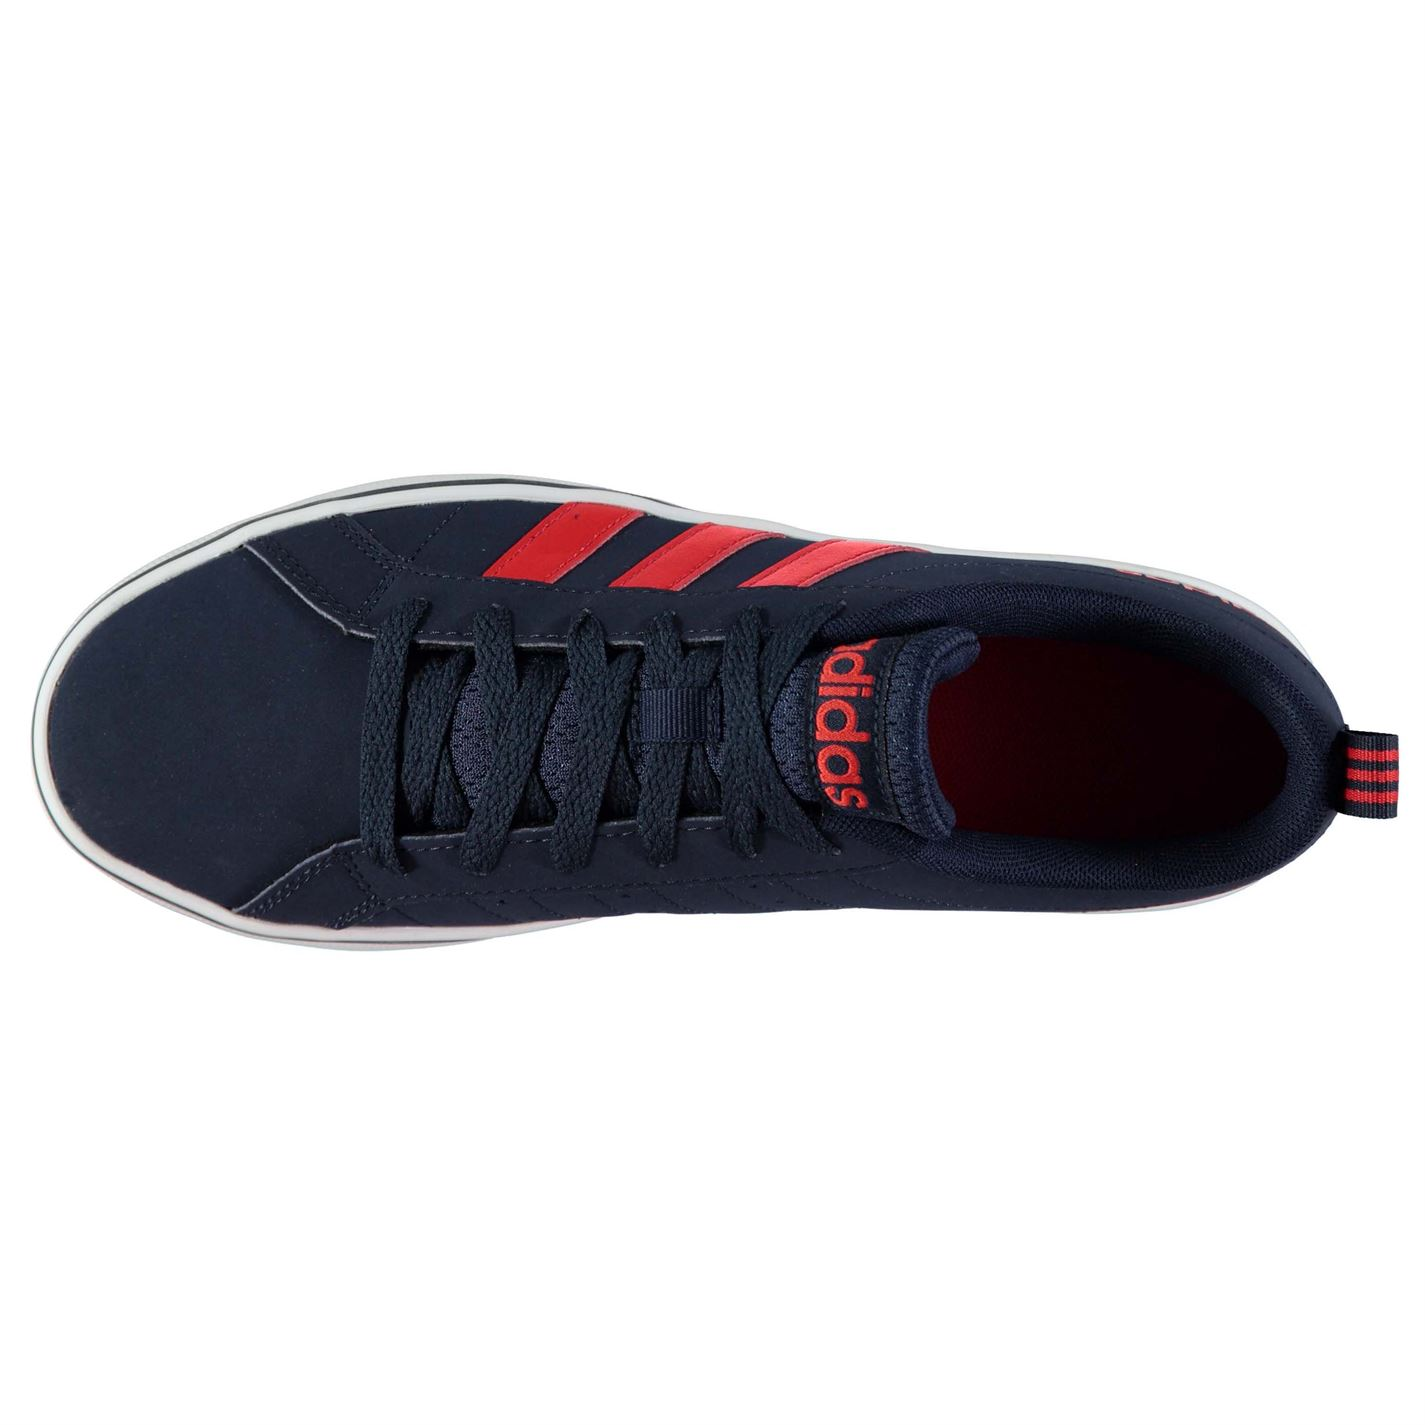 99bfeea76 adidas Mens Pace VS Nubuck Trainers Shoes Lace Up Tonal Stitching ...